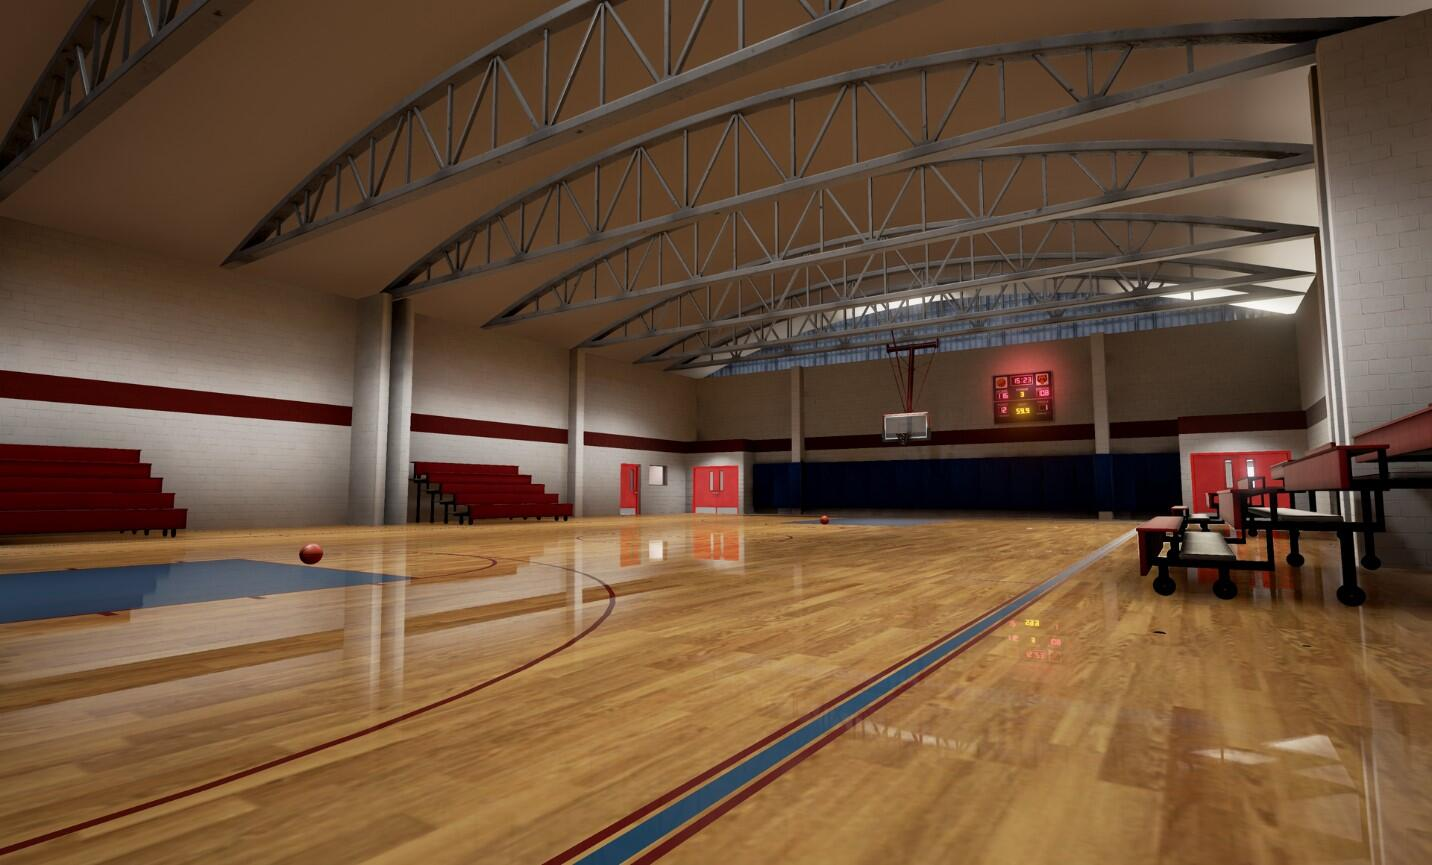 The EDGE virtual training school environment empty gymnasium.